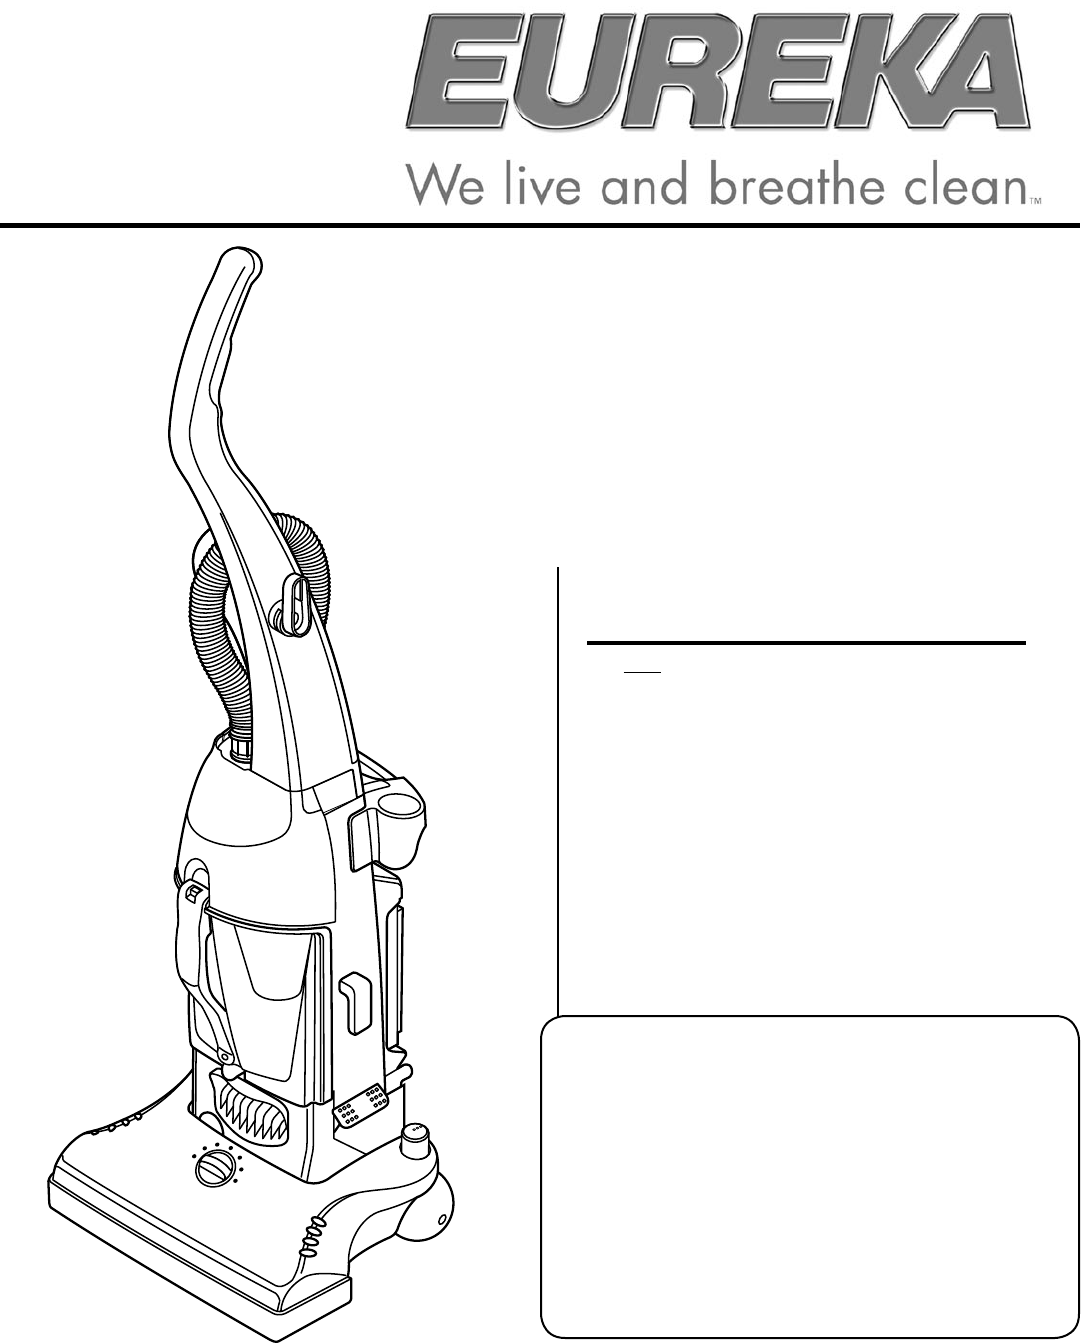 eureka vacuum cleaner 4490 series user guide manualsonline com upright vacuum cleaner